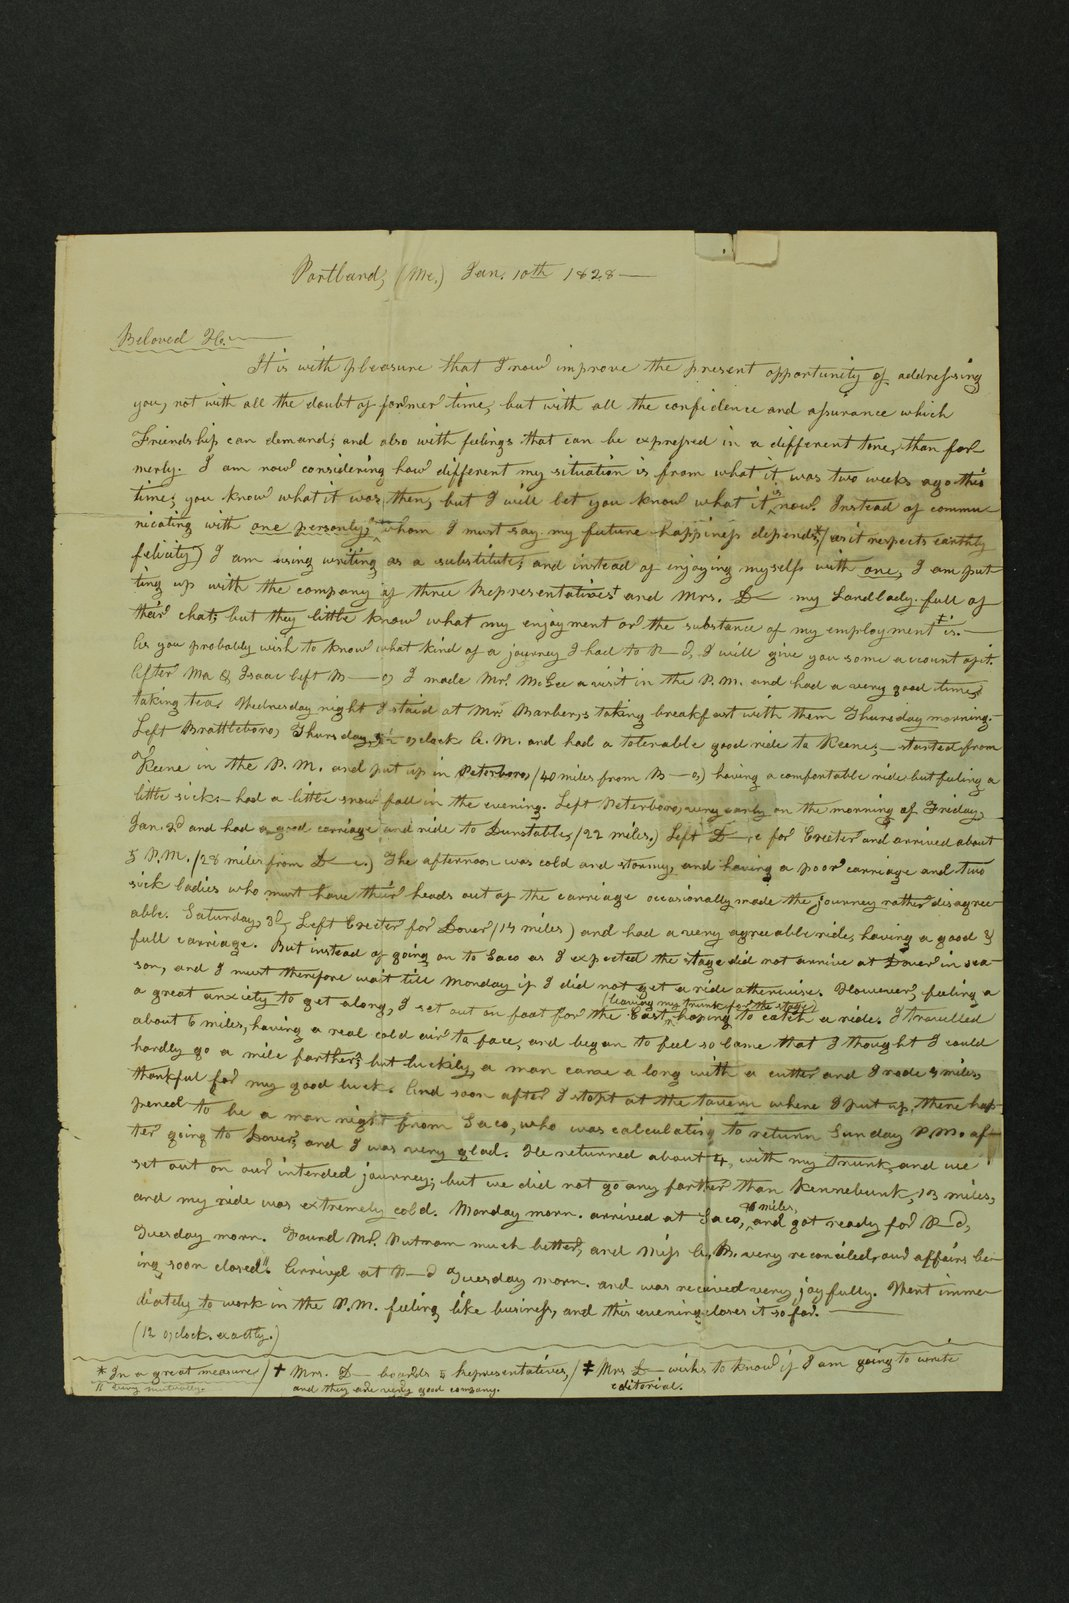 Isaac Goodnow correspondence - 1  [Box 1, Folder 2]